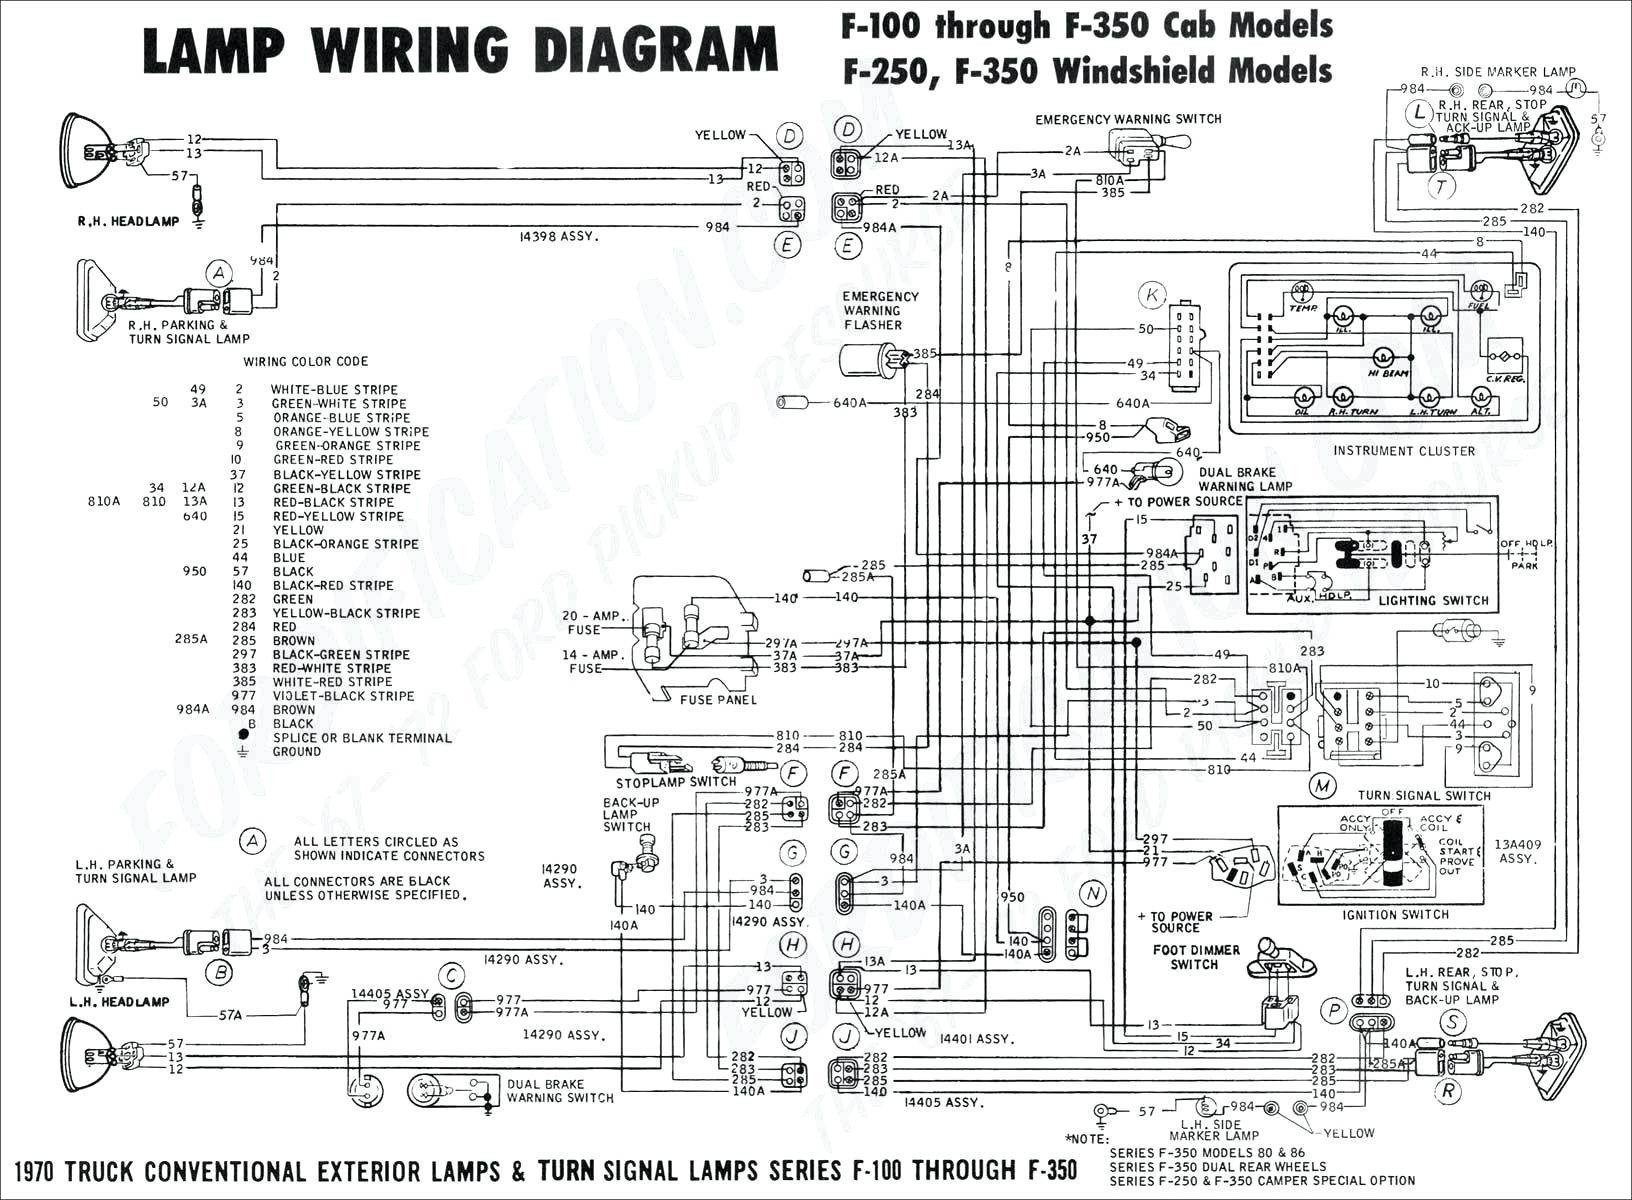 Ford Bronco Alternator Wiring Diagram on 1972 ford alternator diagram, ford bronco vacuum diagram, ford ranger alternator wiring, light wiring diagram, ford 302 distributor wiring diagram, ford bronco alternator connector, ford bronco fuse box diagram, 1996 ford mustang alternator diagram, ford bronco steering column diagram, ford 3 wire alternator diagram, ford alternator connections, ford 3g alternator wiring, 1978 ford bronco wiring diagram, 1972 ford bronco wiring diagram, ford escape alternator wiring, 78 ford bronco wiring diagram, ford bronco fuel pump diagram, 1976 ford ignition wiring diagram, ford bronco engine diagram, ford alternator fuse,